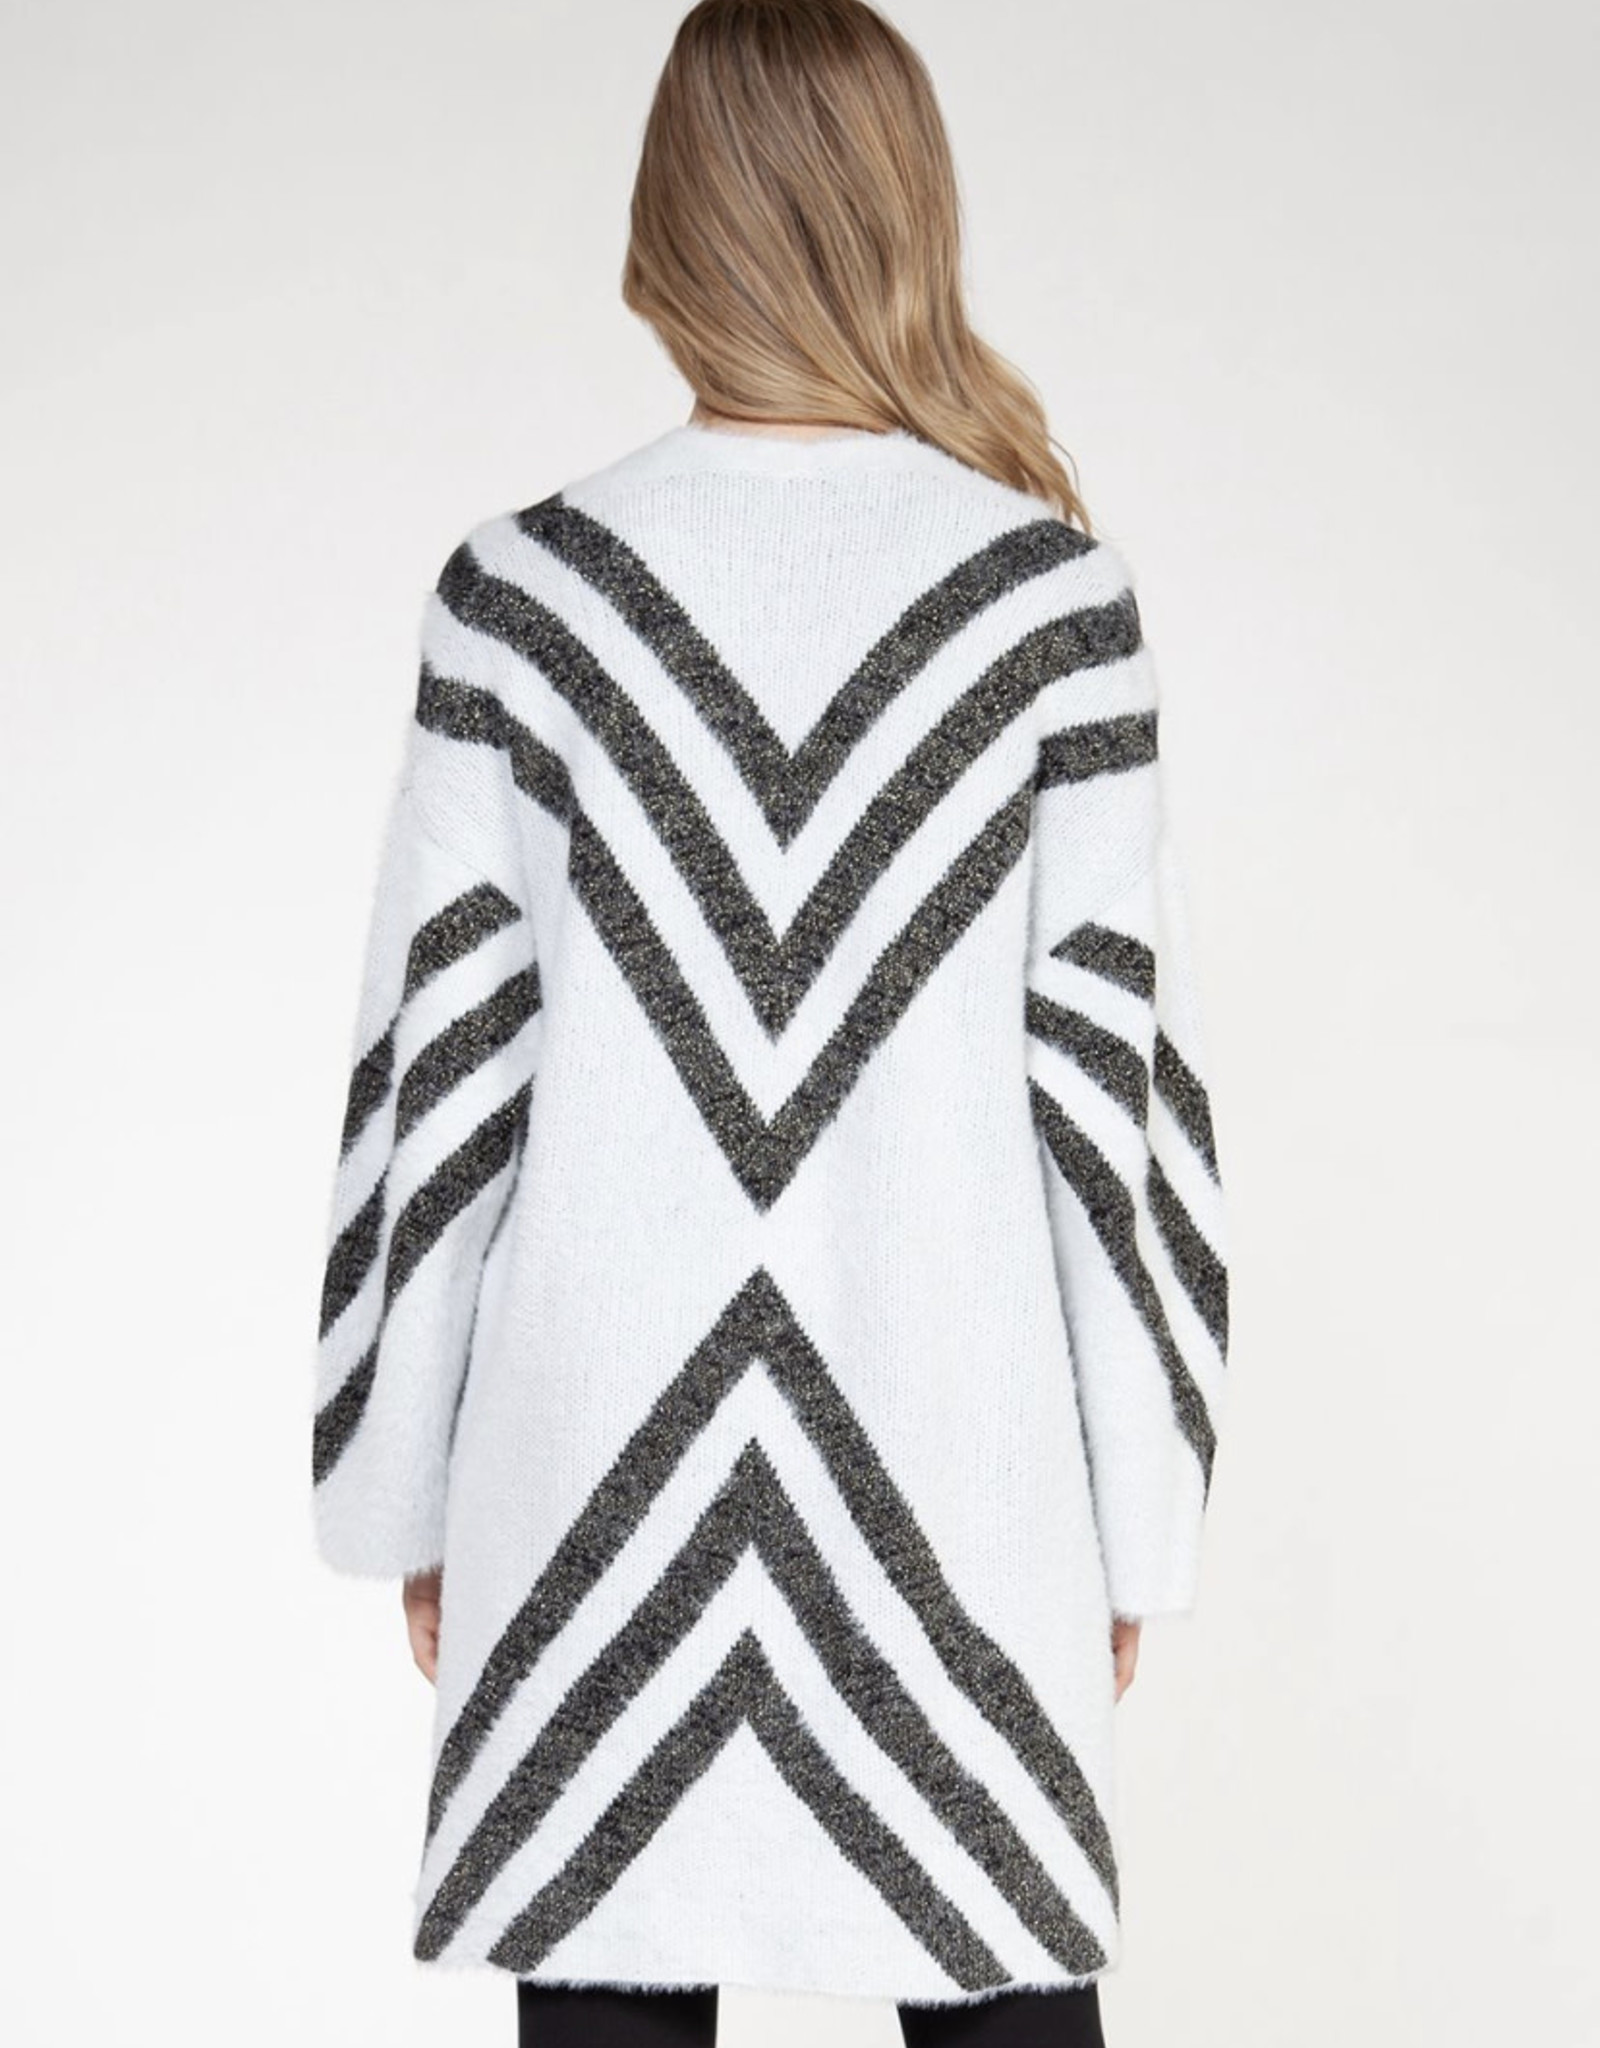 Chevron cardigan with lurex